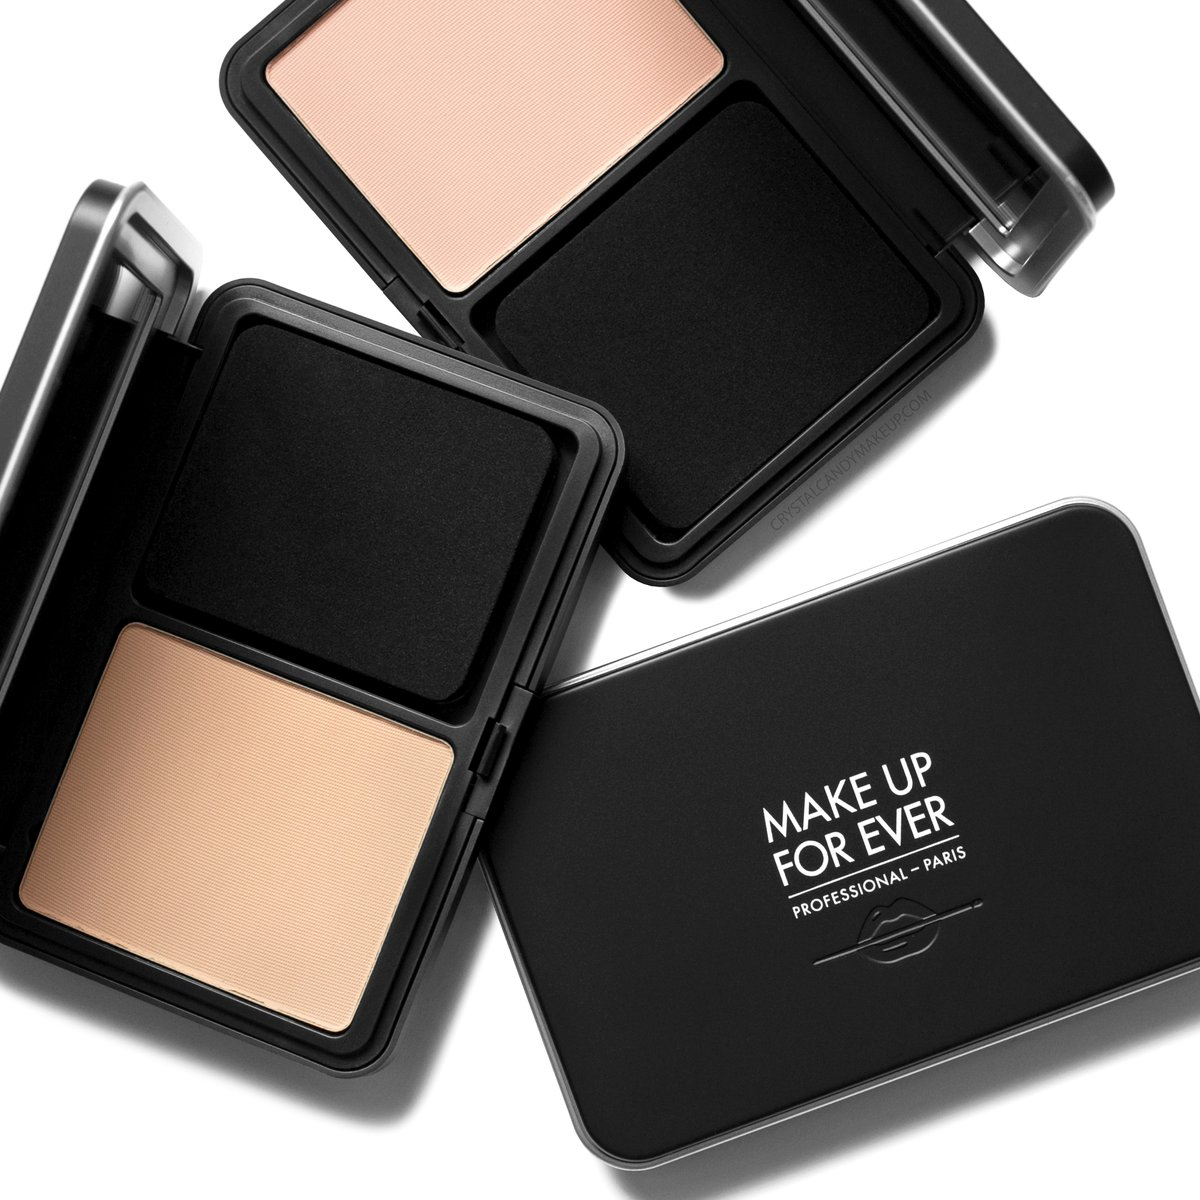 Best of Beauty 2019: My favorite powder foundation is... @MAKEUPFOREVERCa Matte Velvet Skin Powder Foundation! https://crystalcandymakeup.com/2020/01/best-of-beauty-2019-top-30.html … #makeupforever pic.twitter.com/54FLqfFCIy